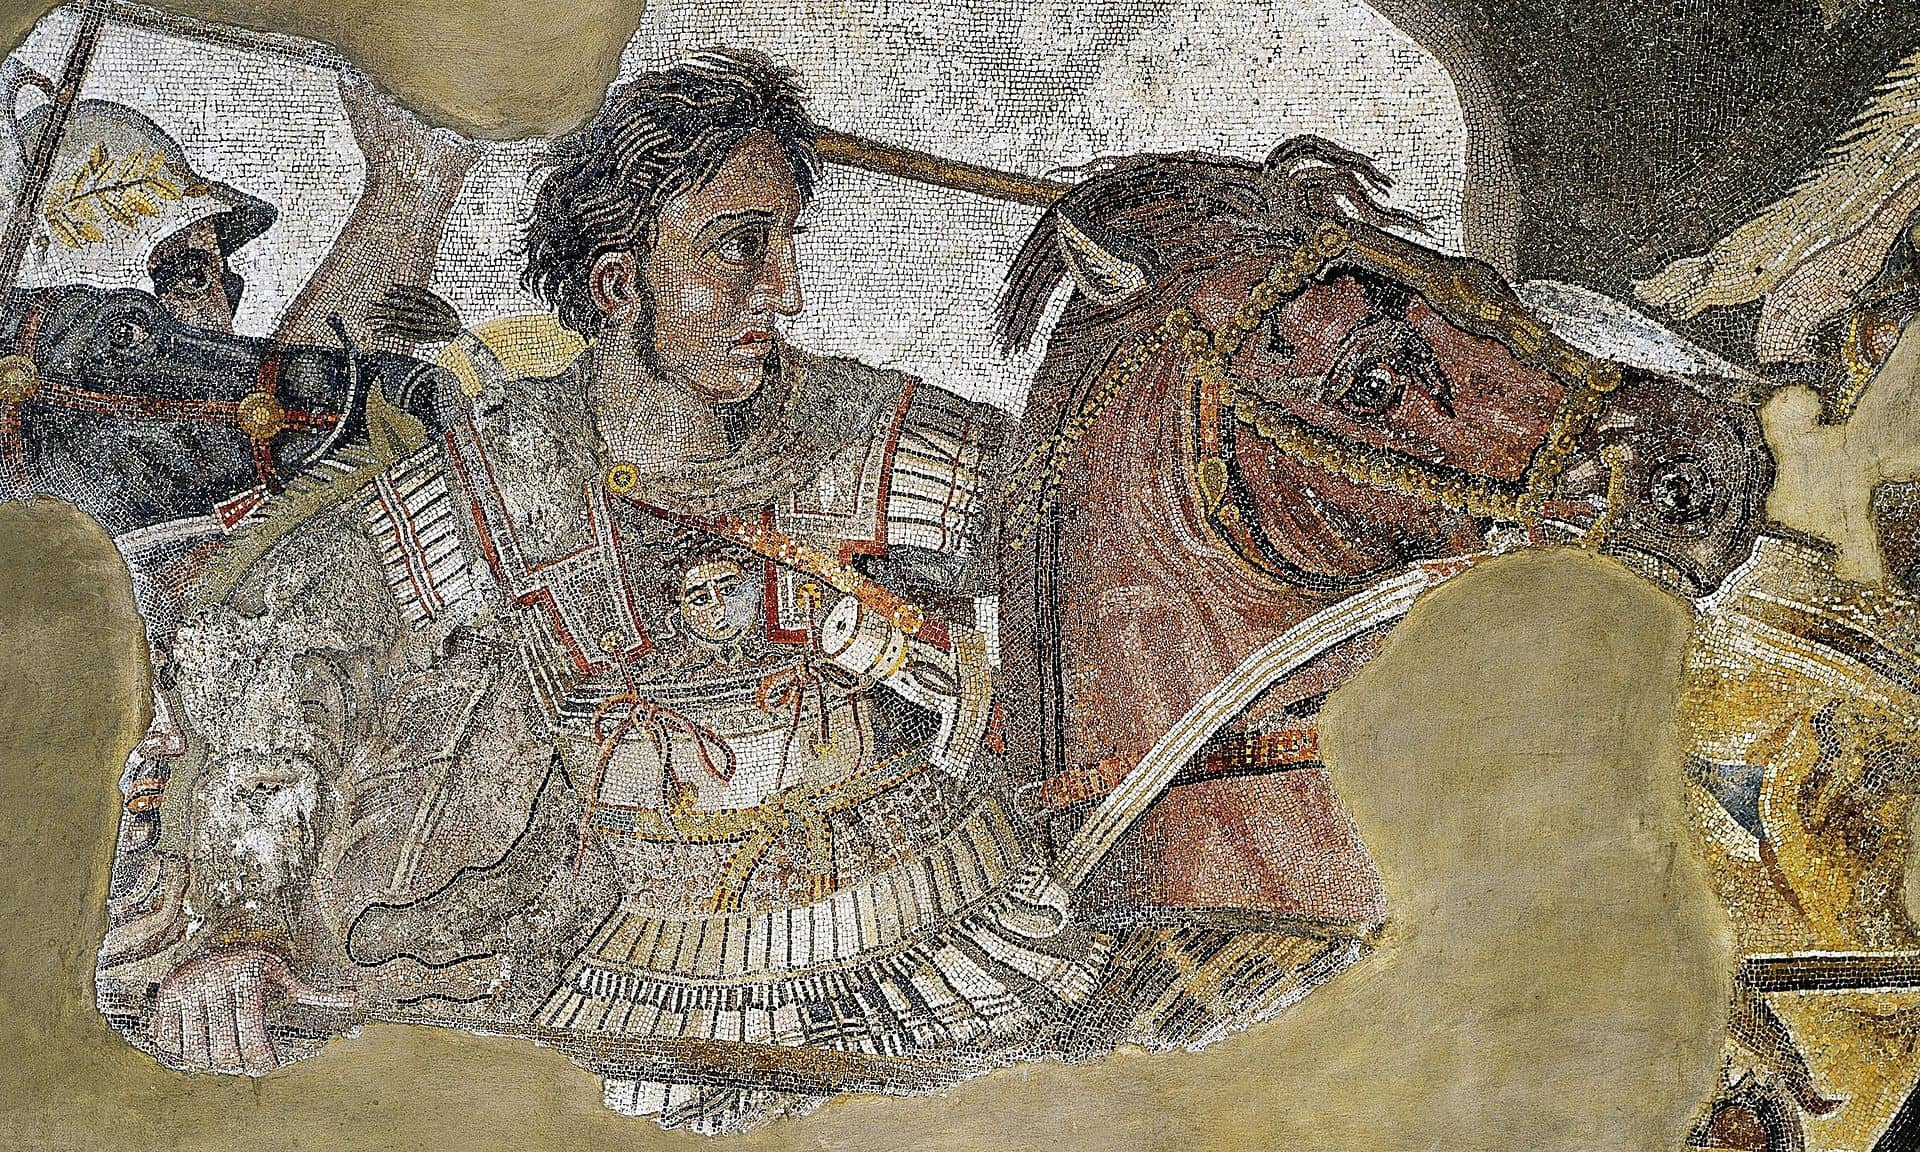 Mosiac Alexander the Great